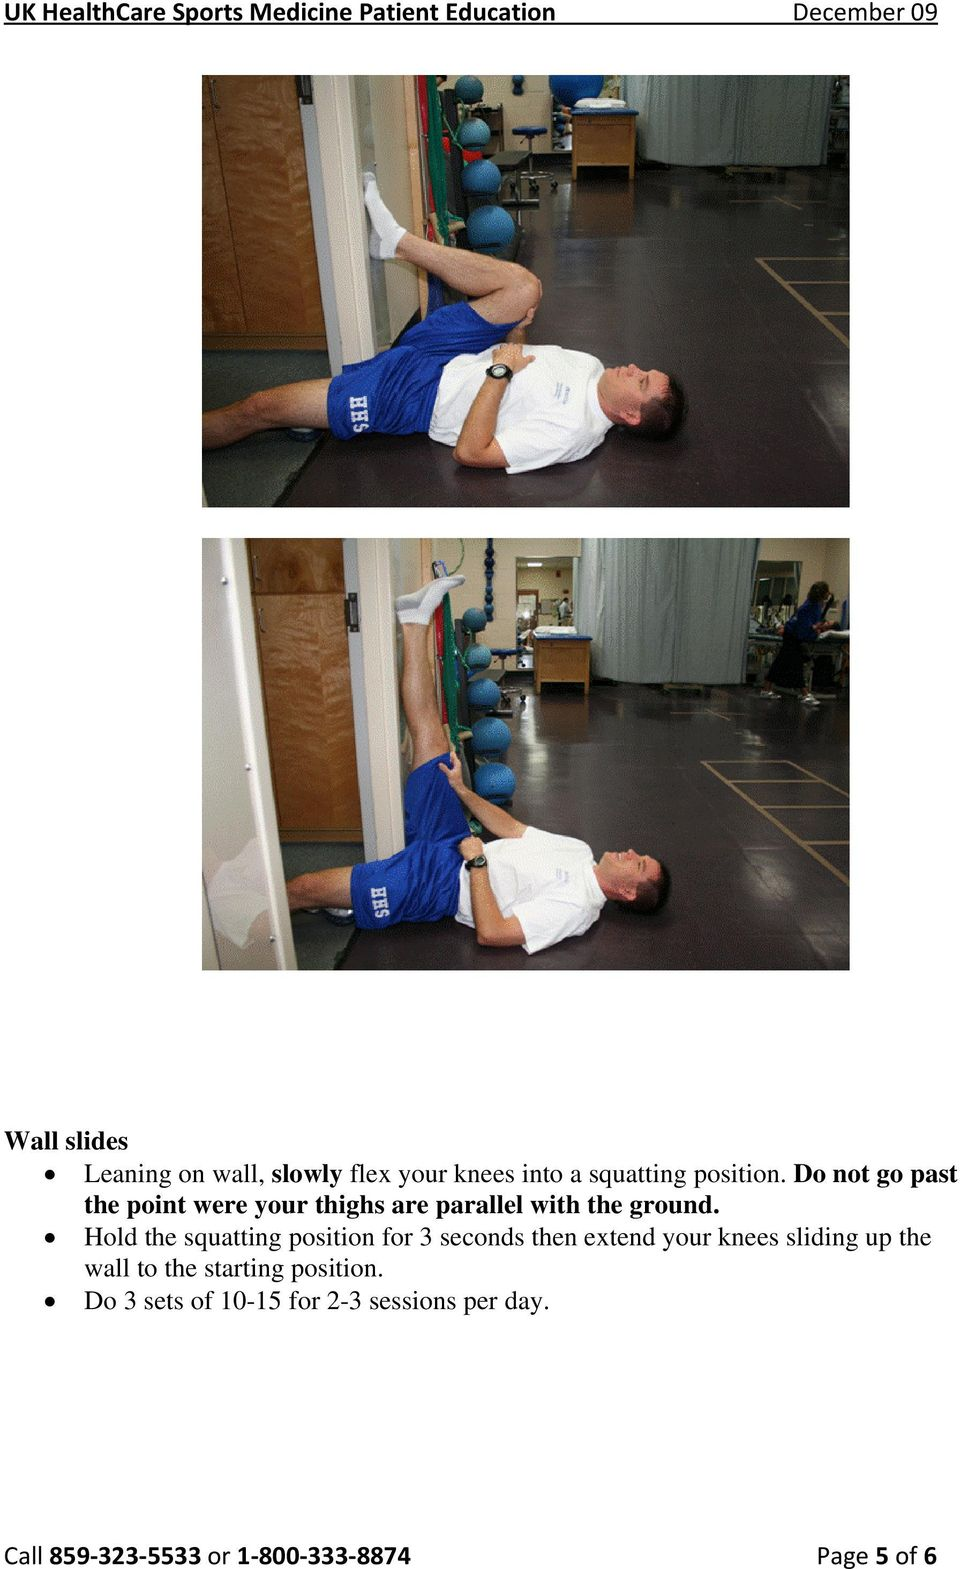 Hold the squatting position for 3 seconds then extend your knees sliding up the wall to